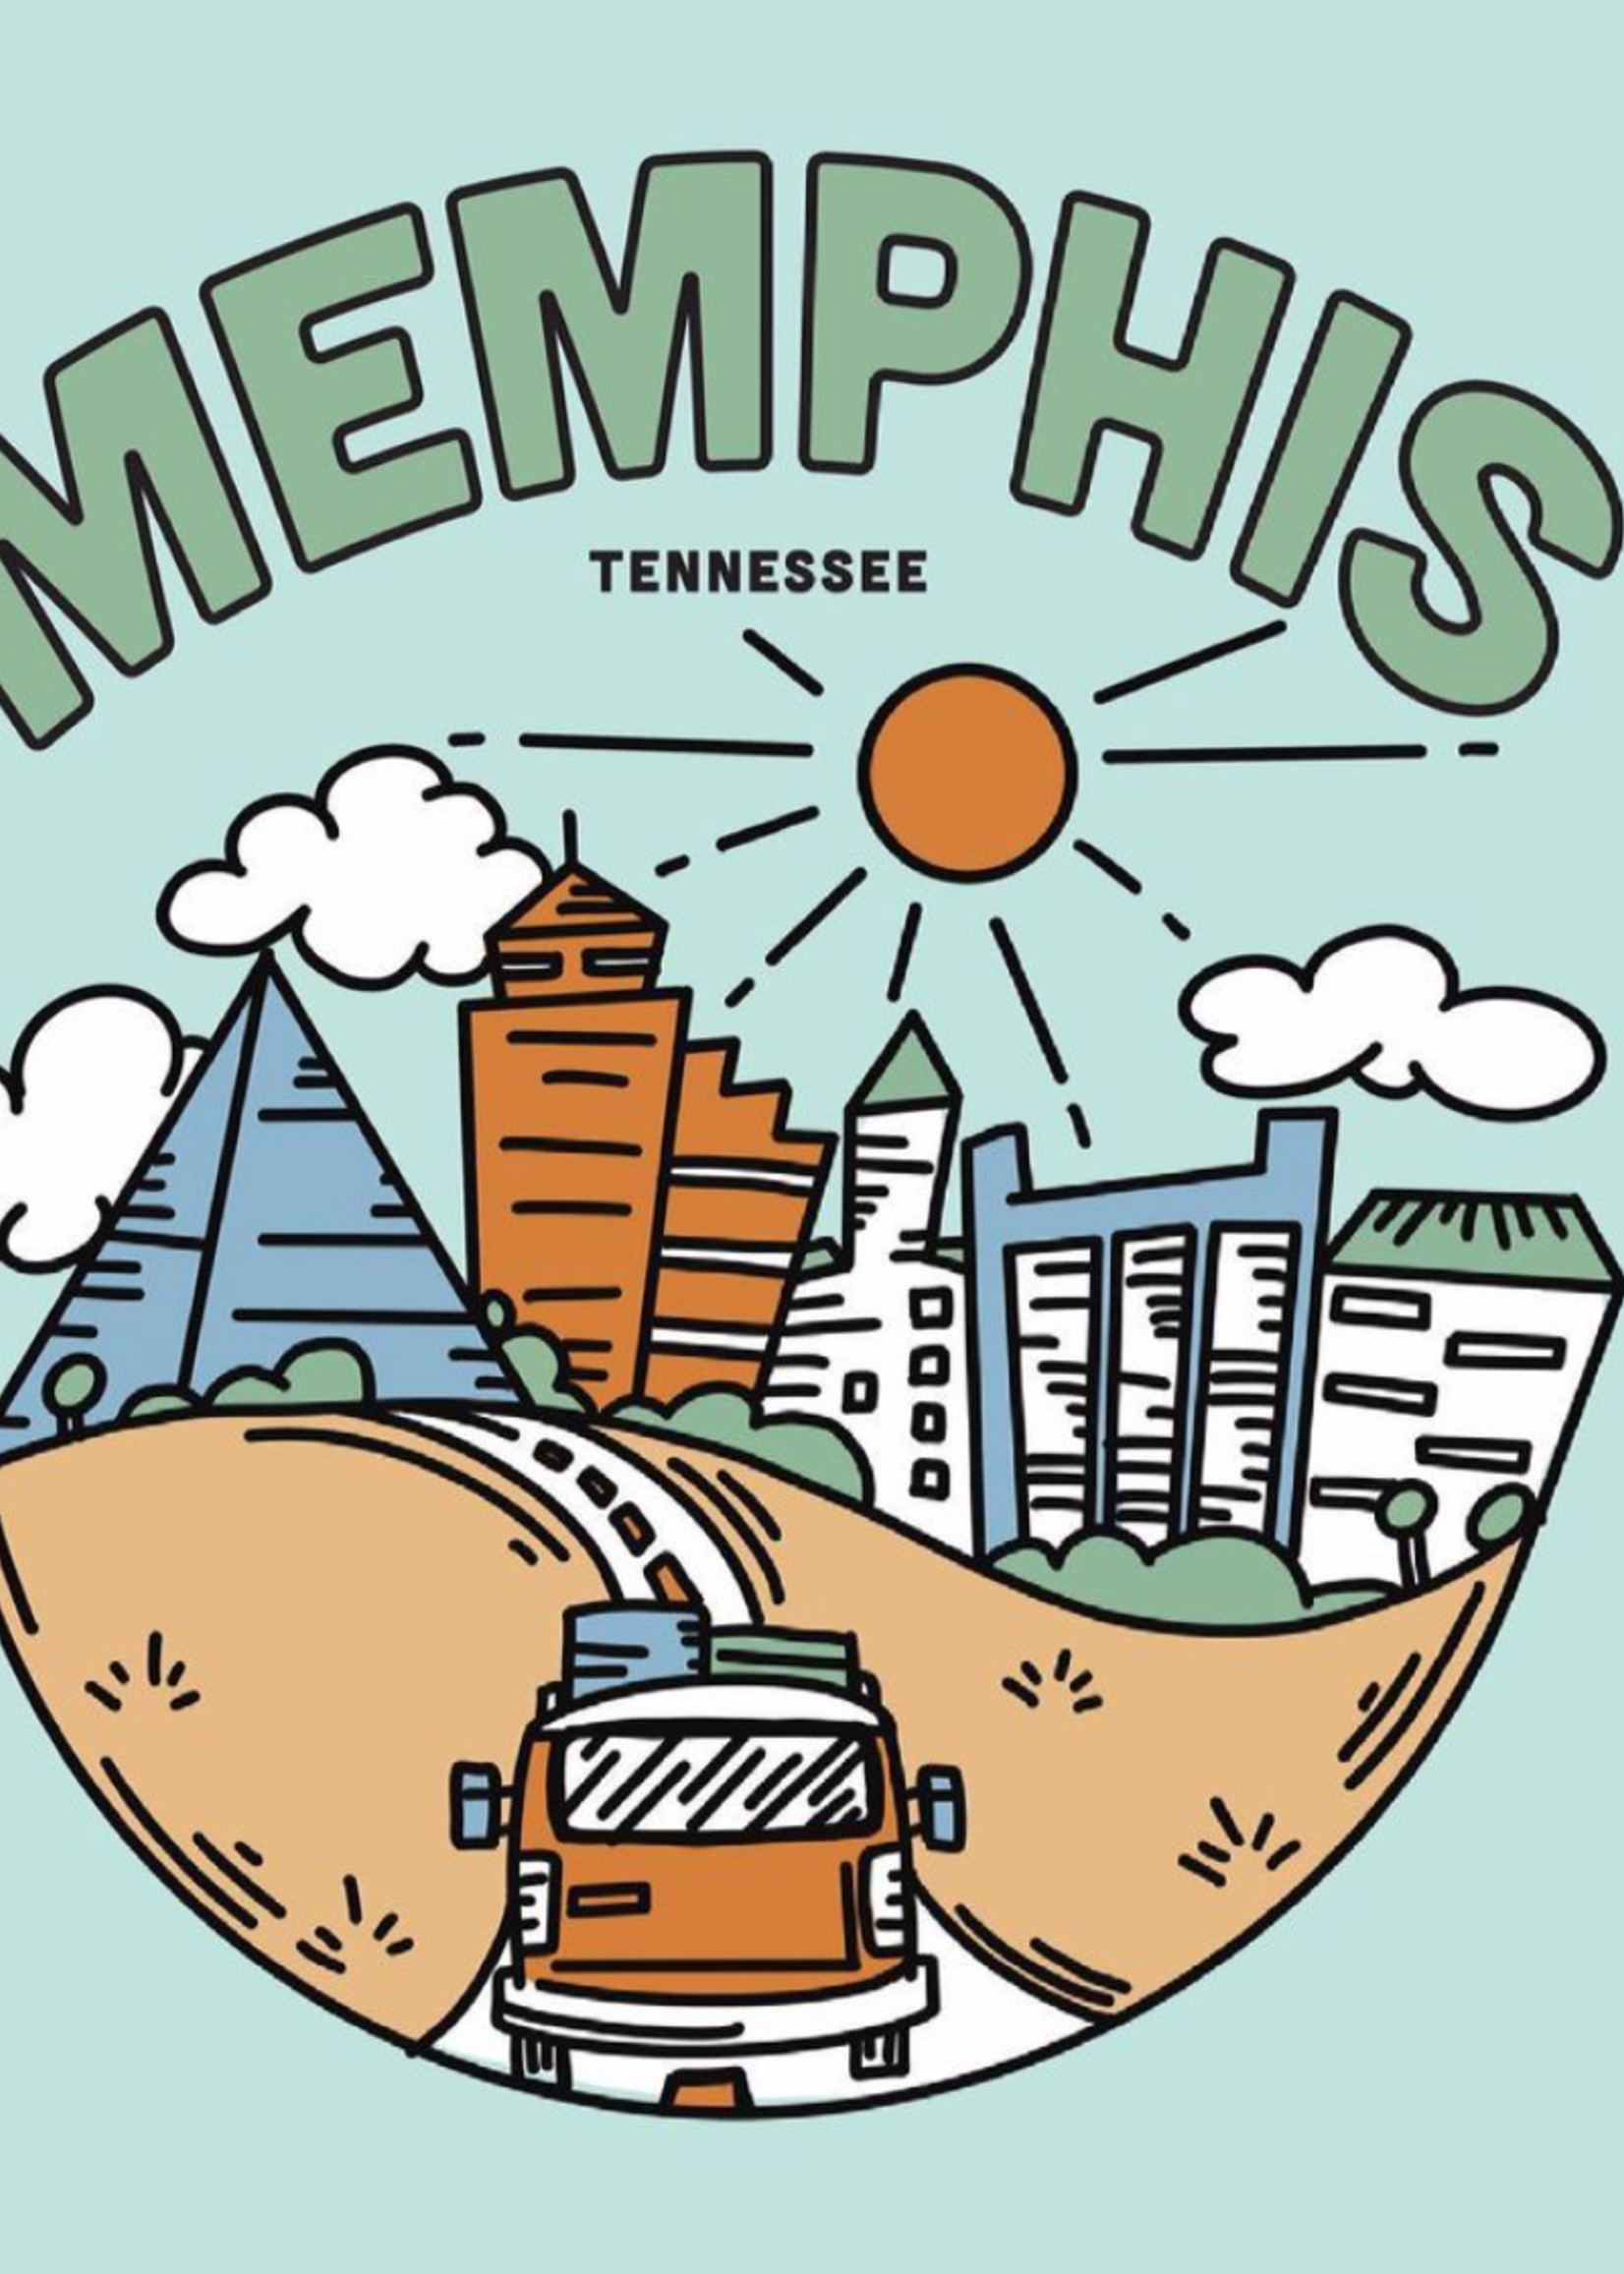 Barnes & Co. Welcome to Memphis